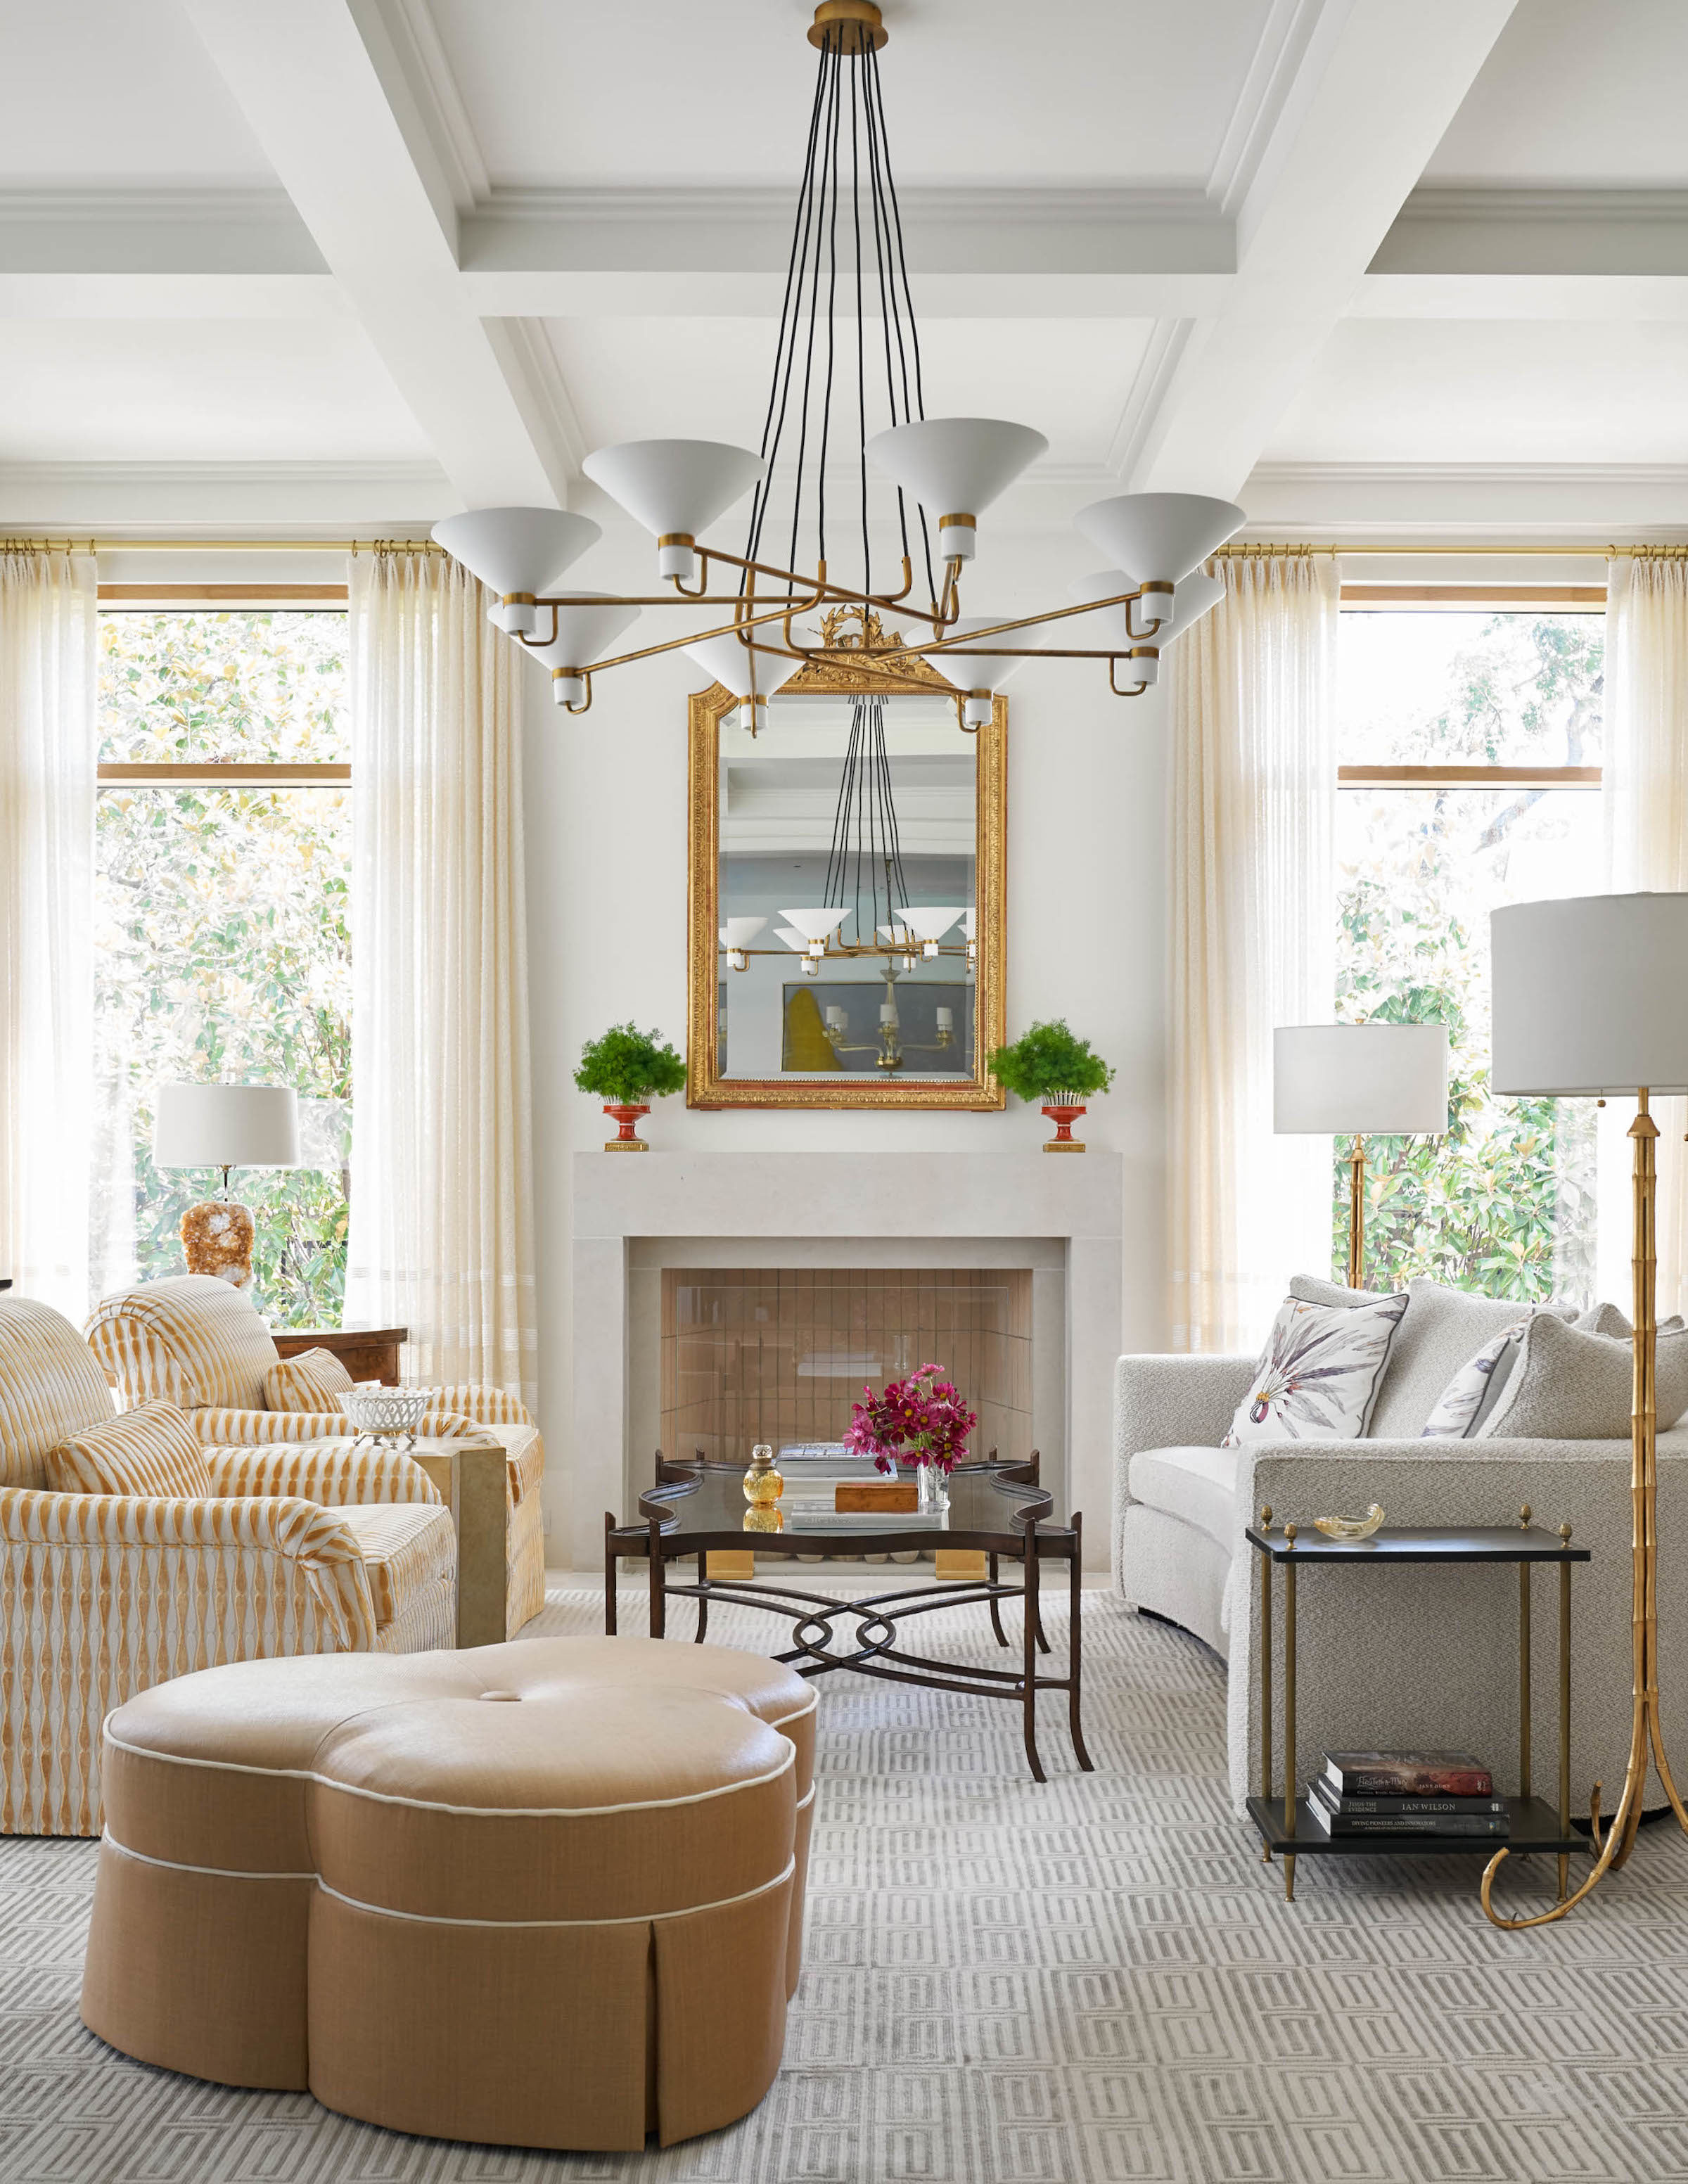 Shelby Wagner Design - Turtle Creek Lane